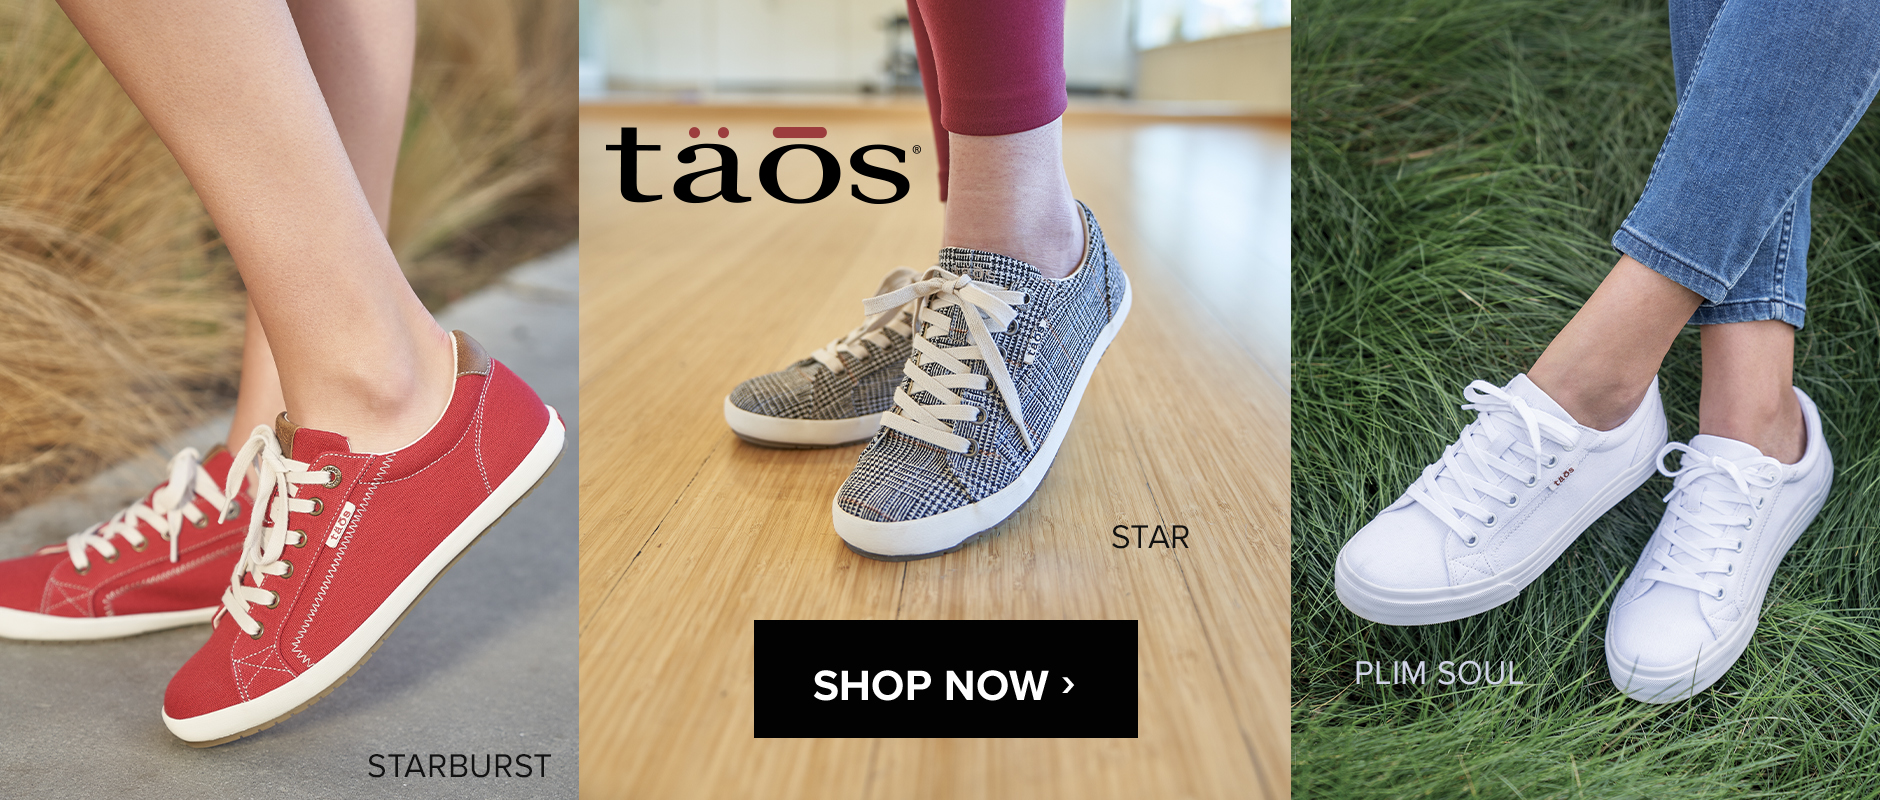 Taos: Active Best Sellers